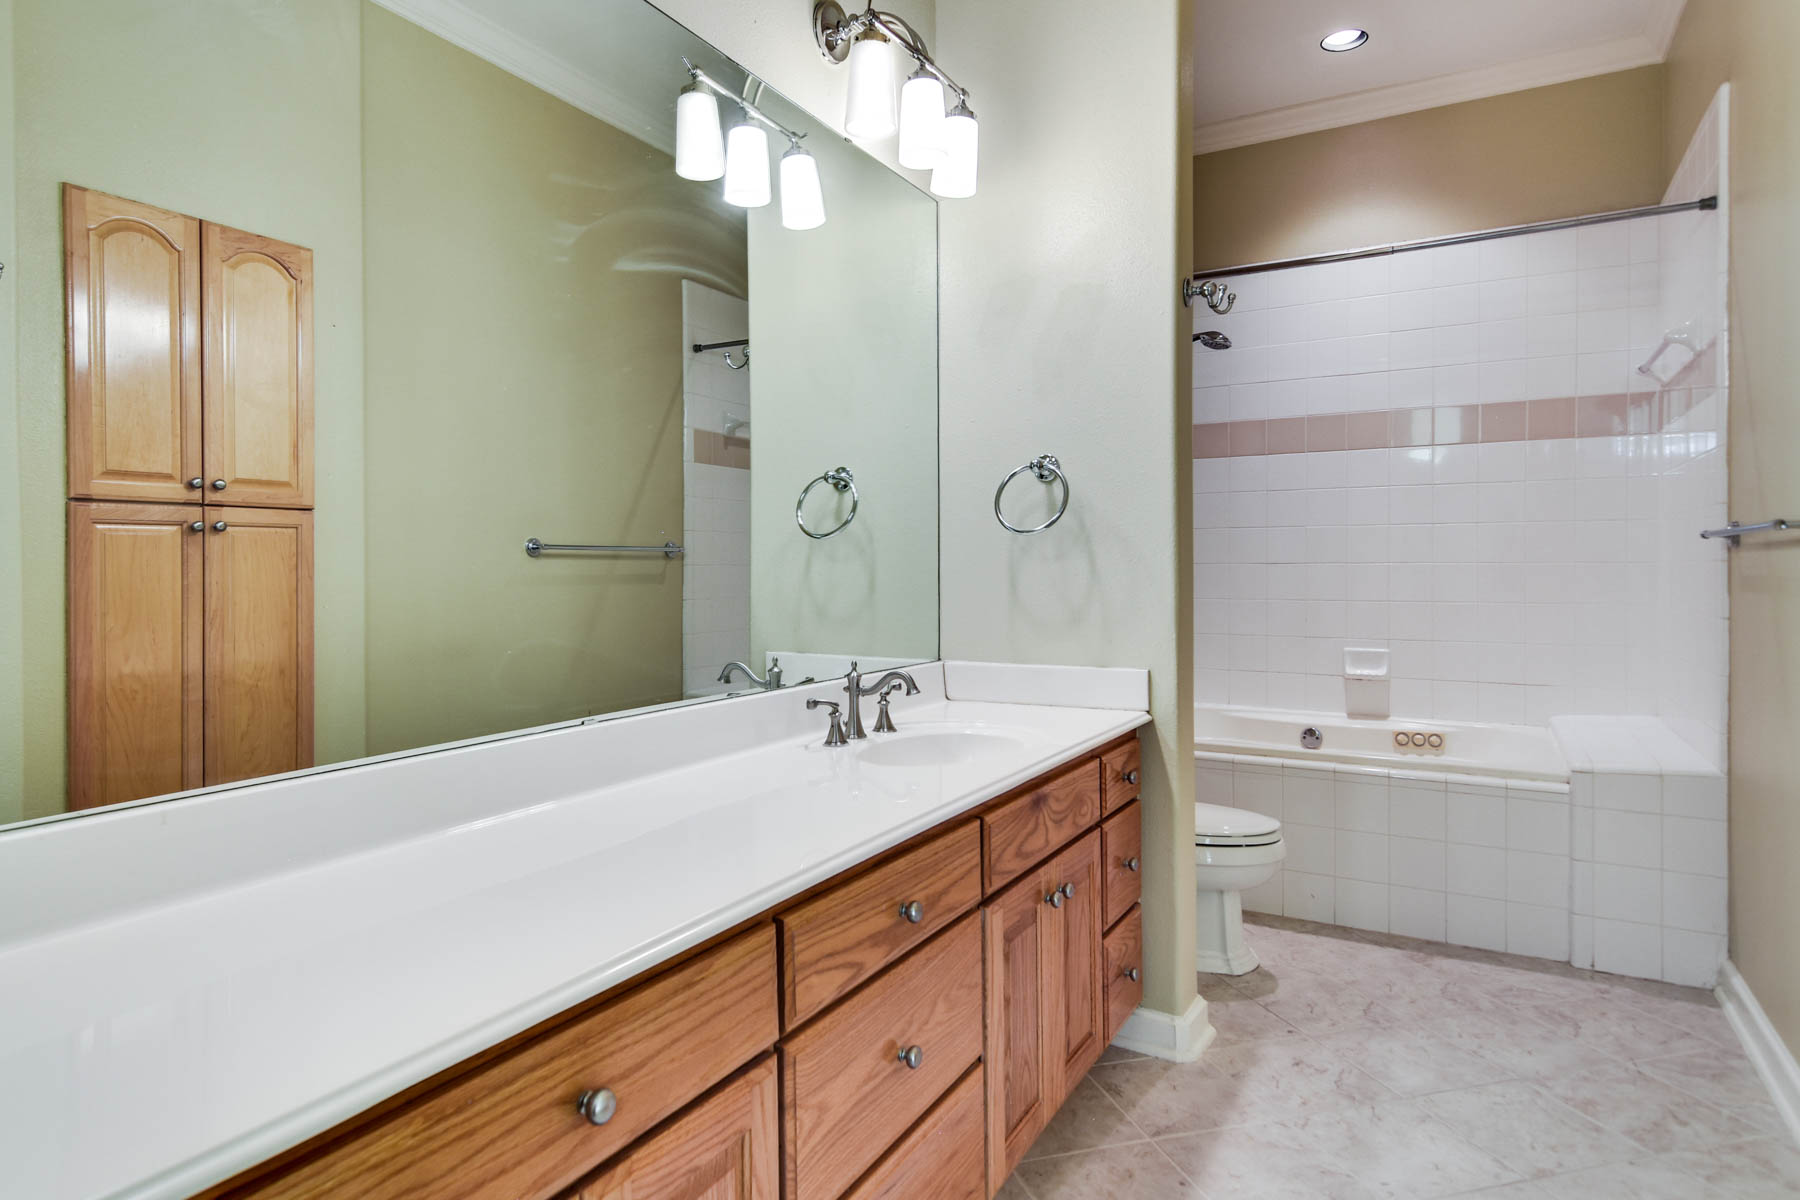 Additional photo for property listing at Townhome in the Heart of Olmos Park 129 E Melrose Dr Olmos Park, Texas 78212 United States